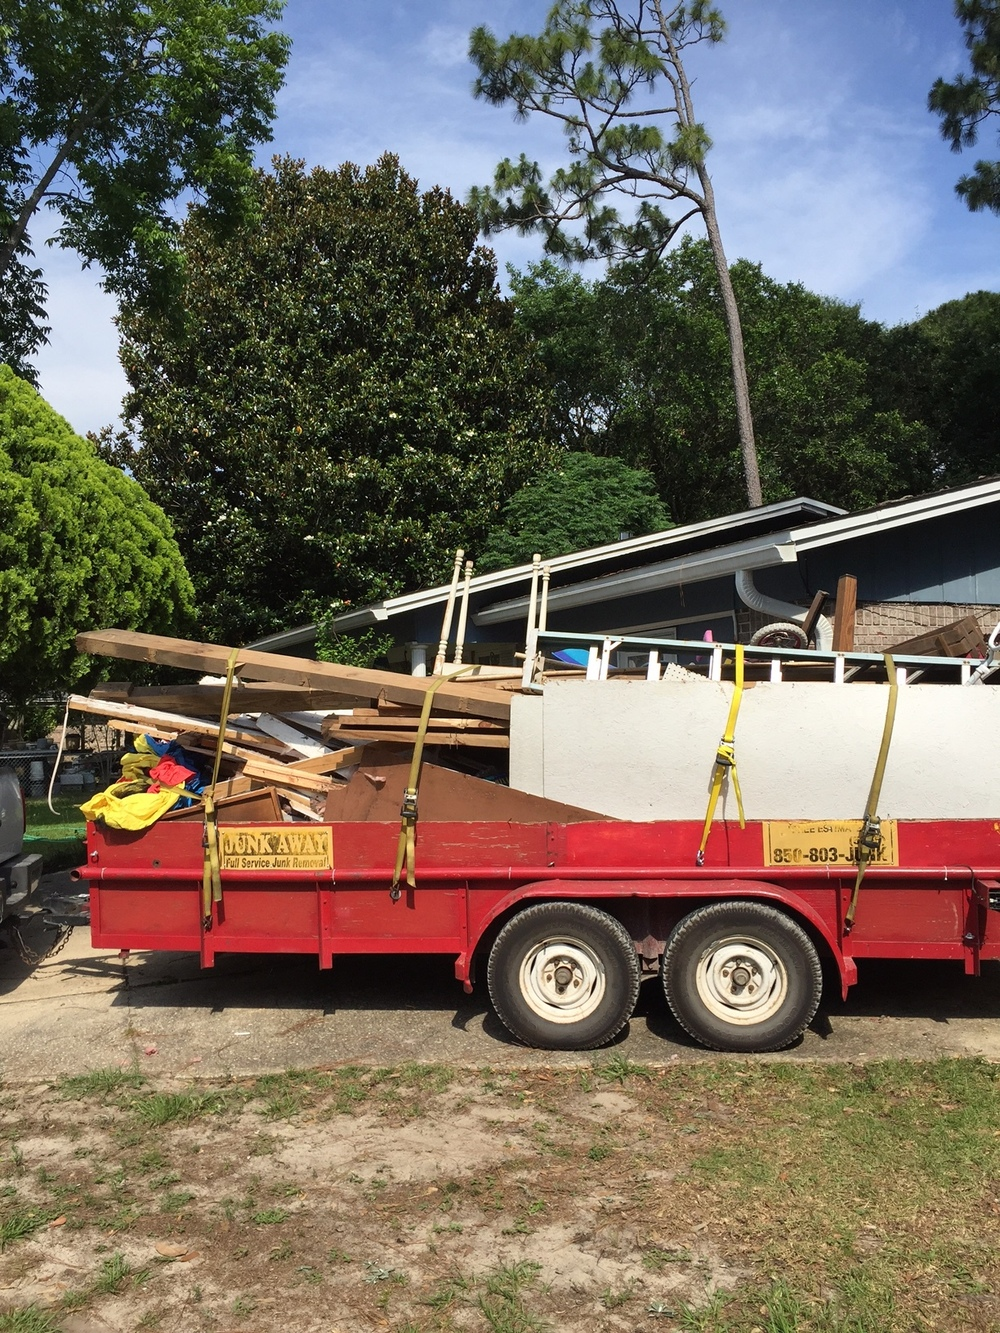 More than TWO TONS worth of an unused shed hauled away yesterday!